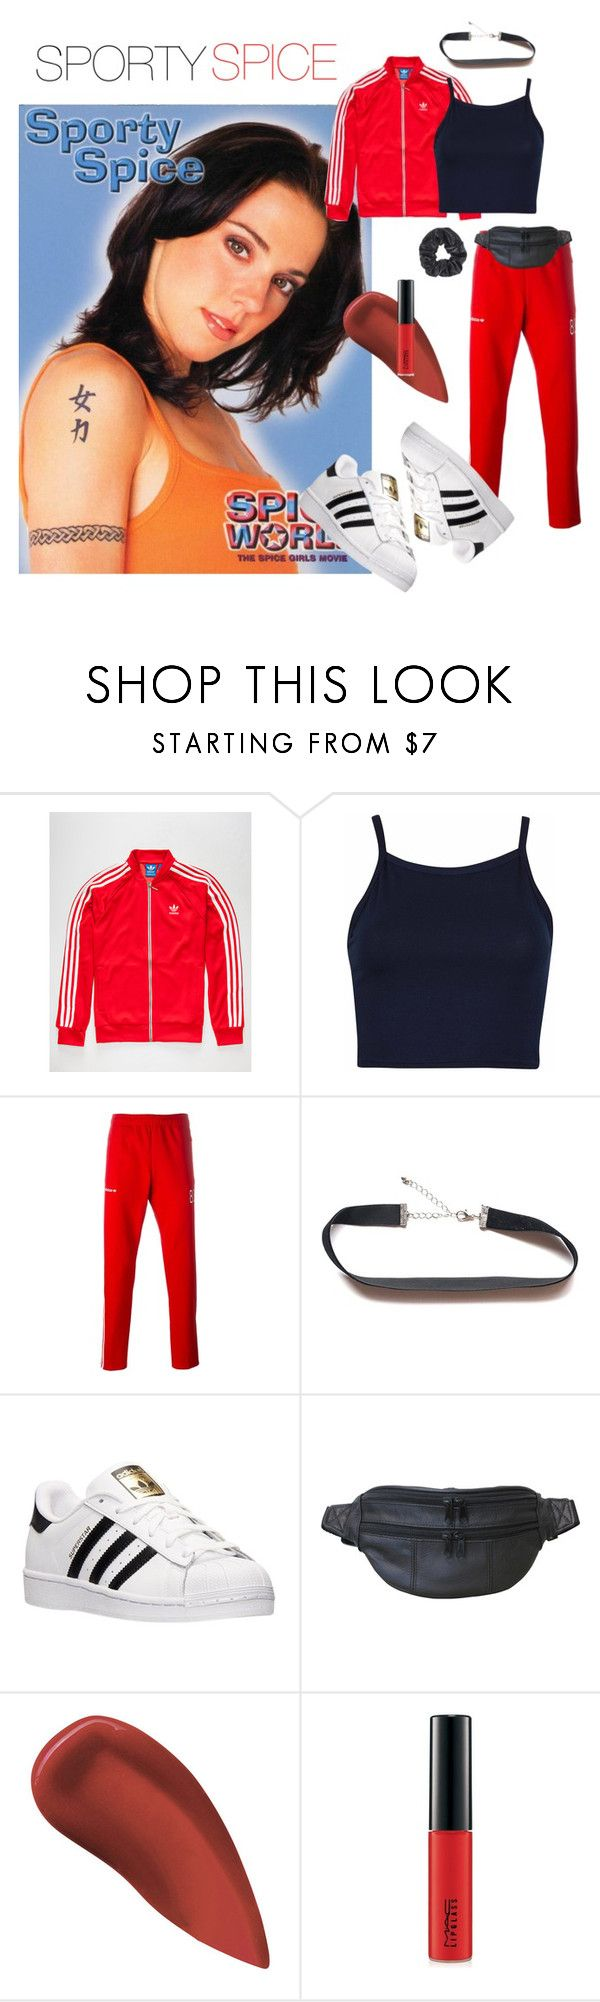 SPORTY SPICE HALLOWEEN COSTUME by a-le-mode on Polyvore featuring adidas AmeriLeather  sc 1 st  Pinterest & SPORTY SPICE HALLOWEEN COSTUME | Pinterest | Kevyn aucoin Sporty ...